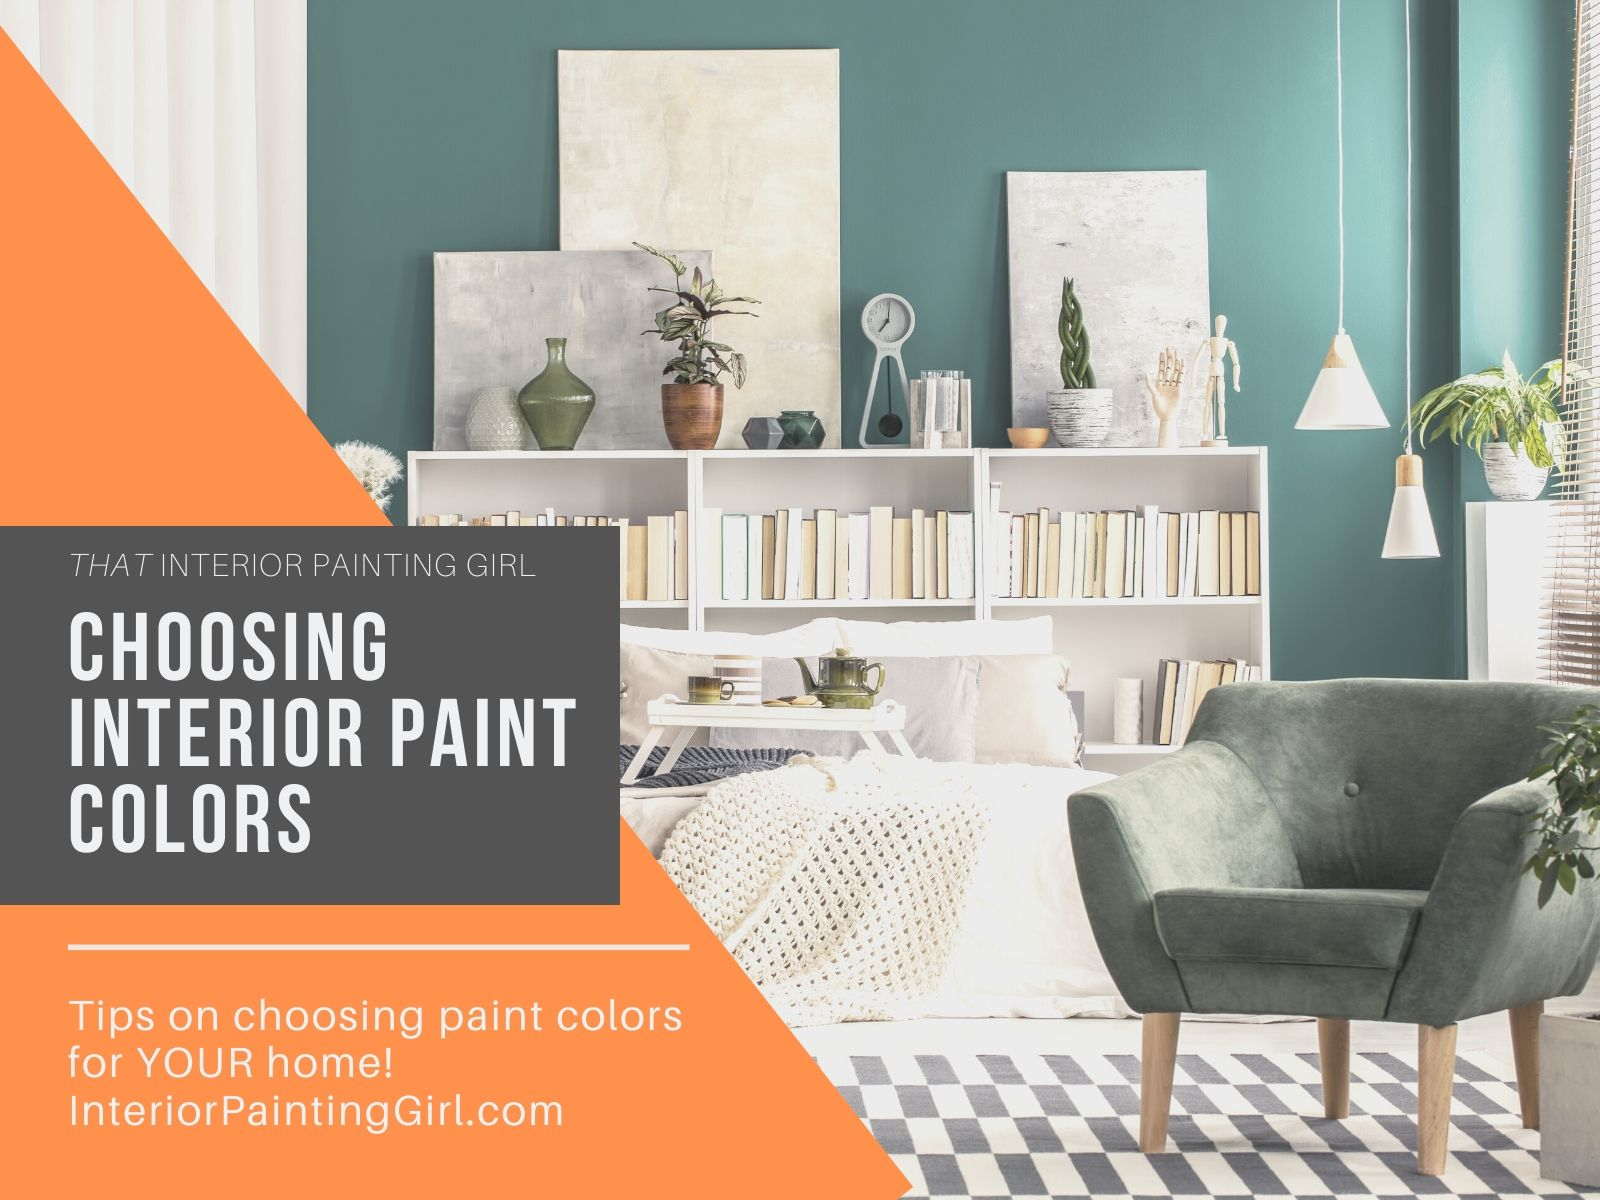 A step-by-step guide to Choosing Interior Paint Colors for YOUR space!